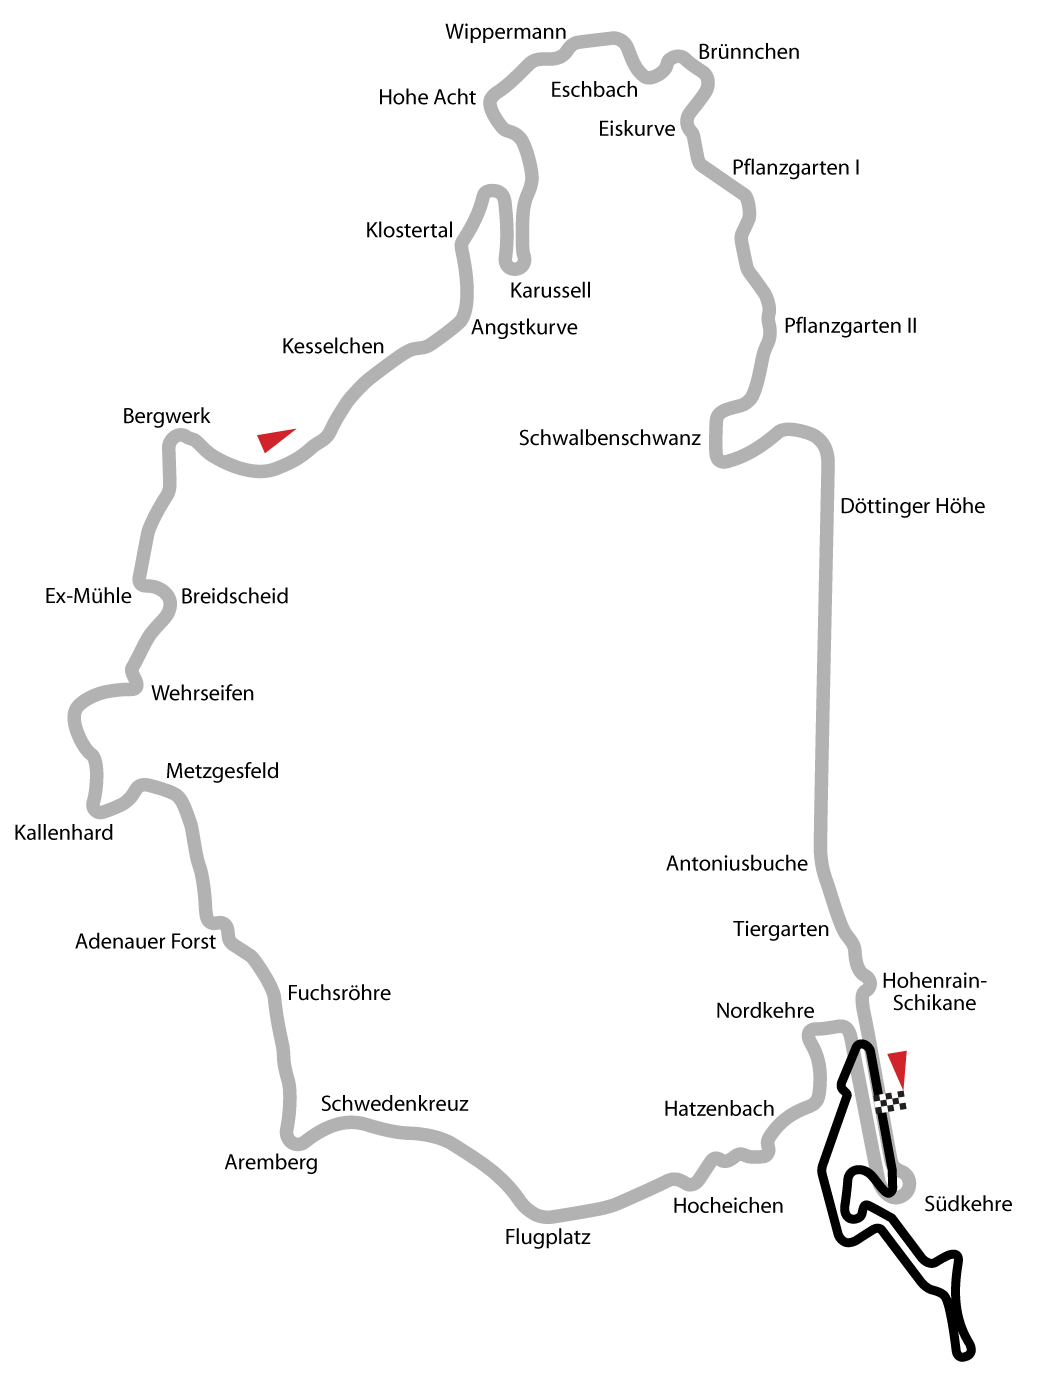 List of Nordschleife lap times (racing) - Wikipedia